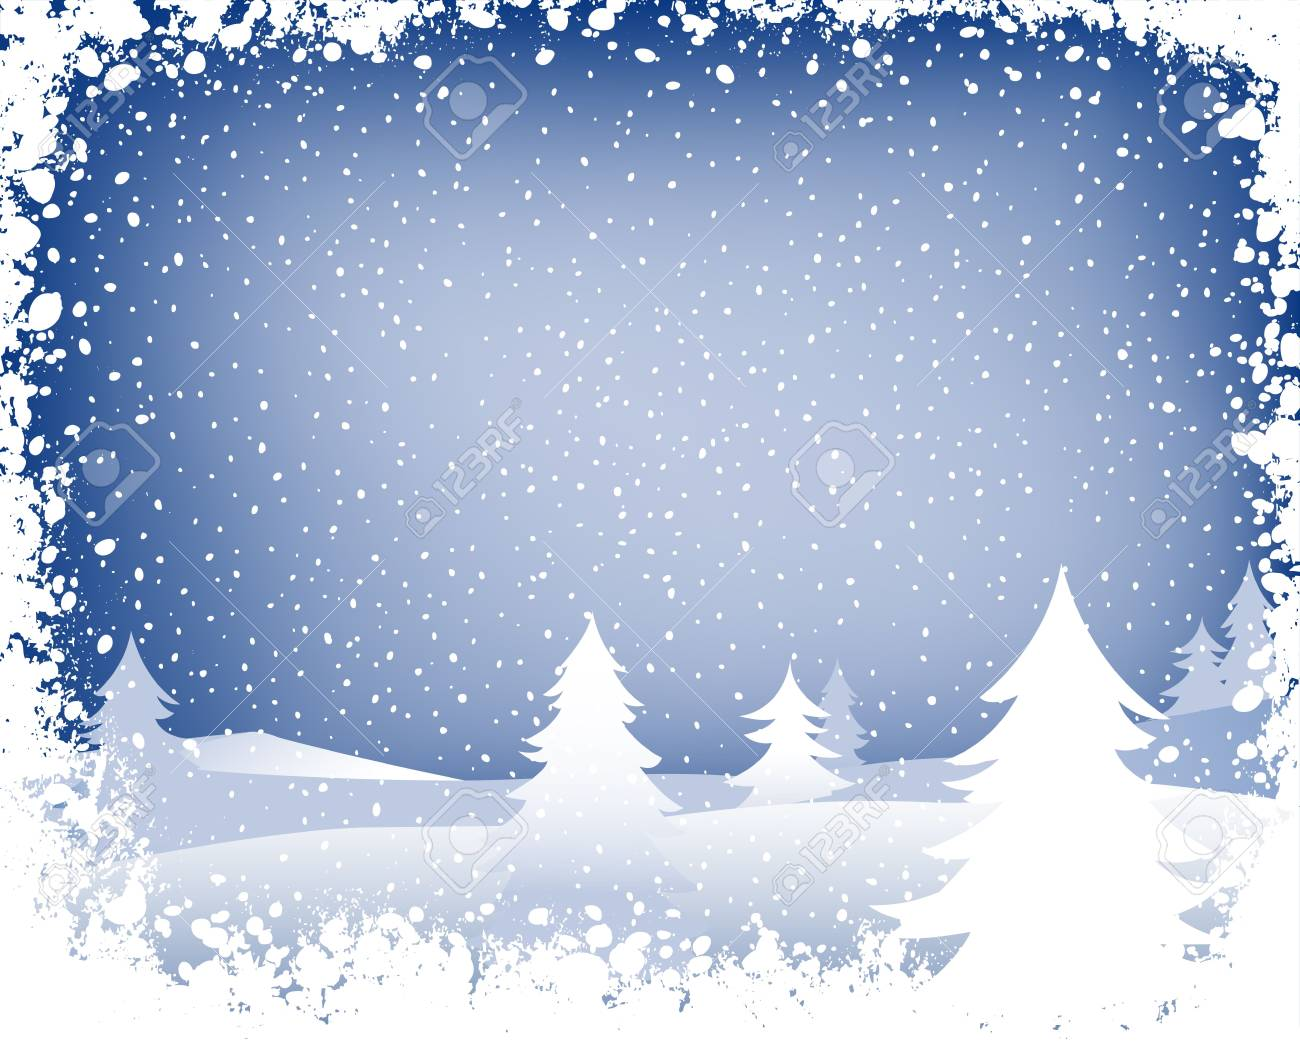 fir forest in wintertime with falling snow Stock Photo - 1964335